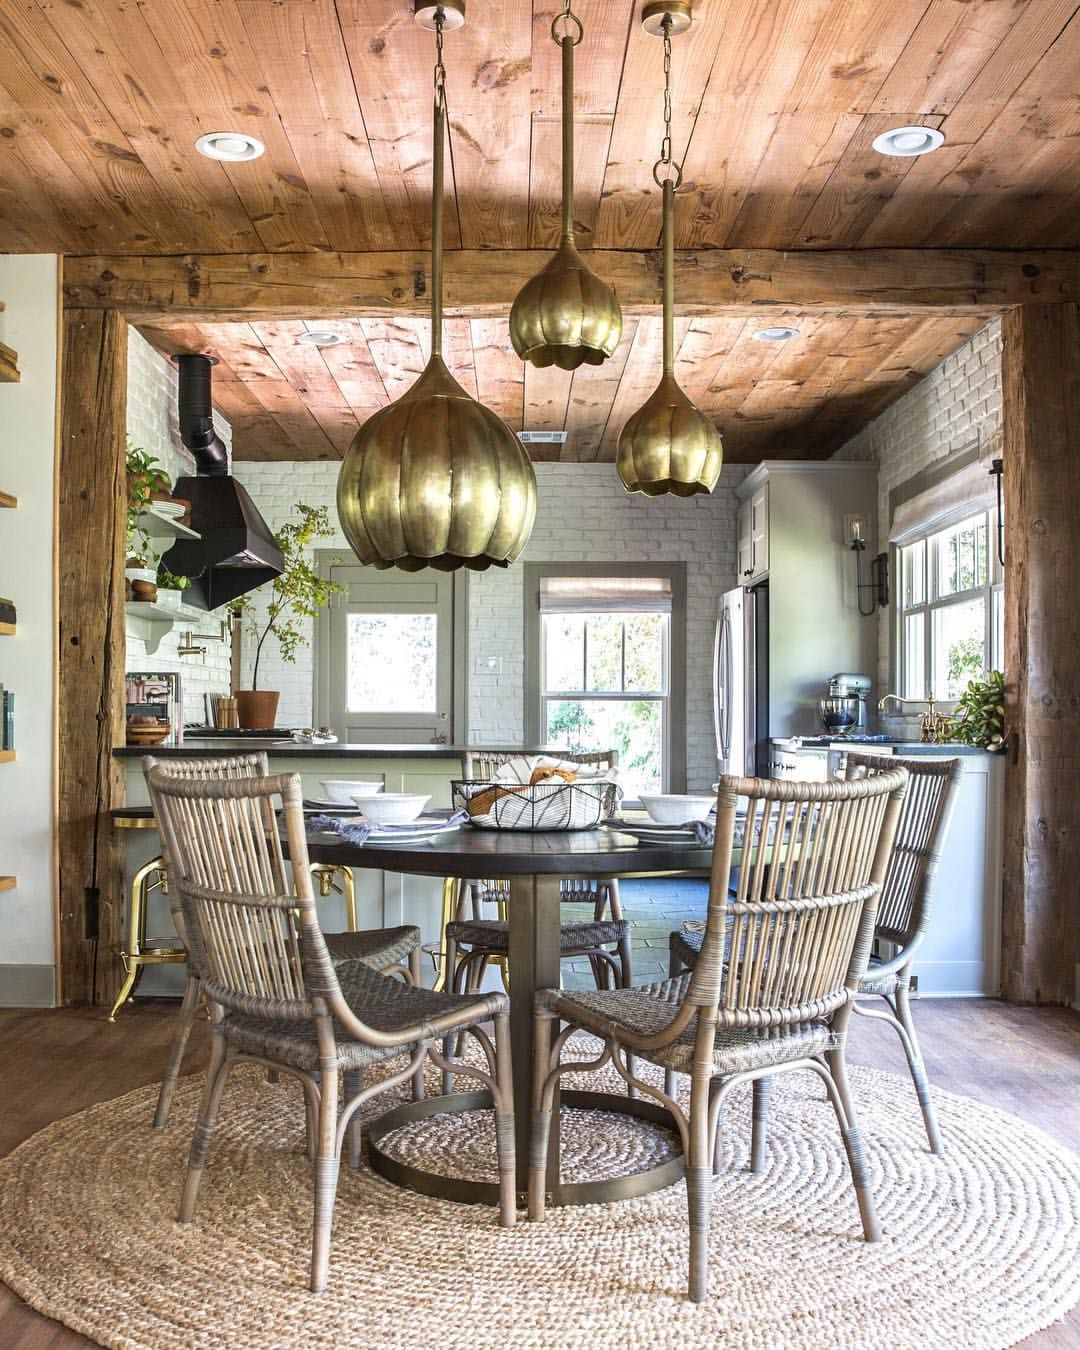 Joanna Gaines Tips For Decorating Living Rooms: Pin By Julie Luu 🍟 On Dining Area